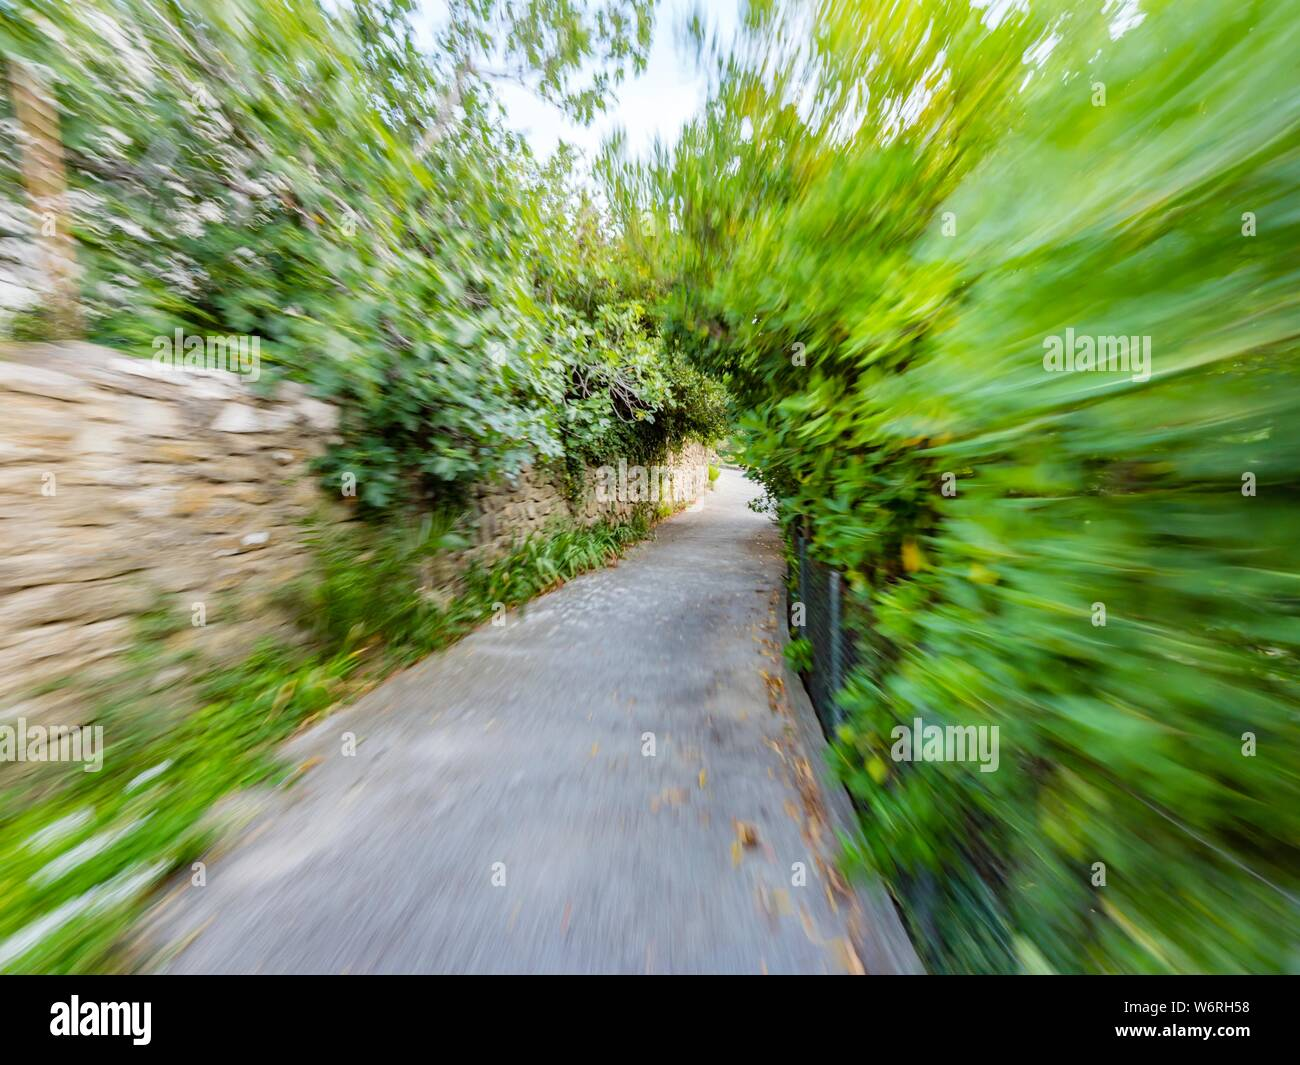 Green vegetation speeding on small road with stone wall on one side Stock Photo